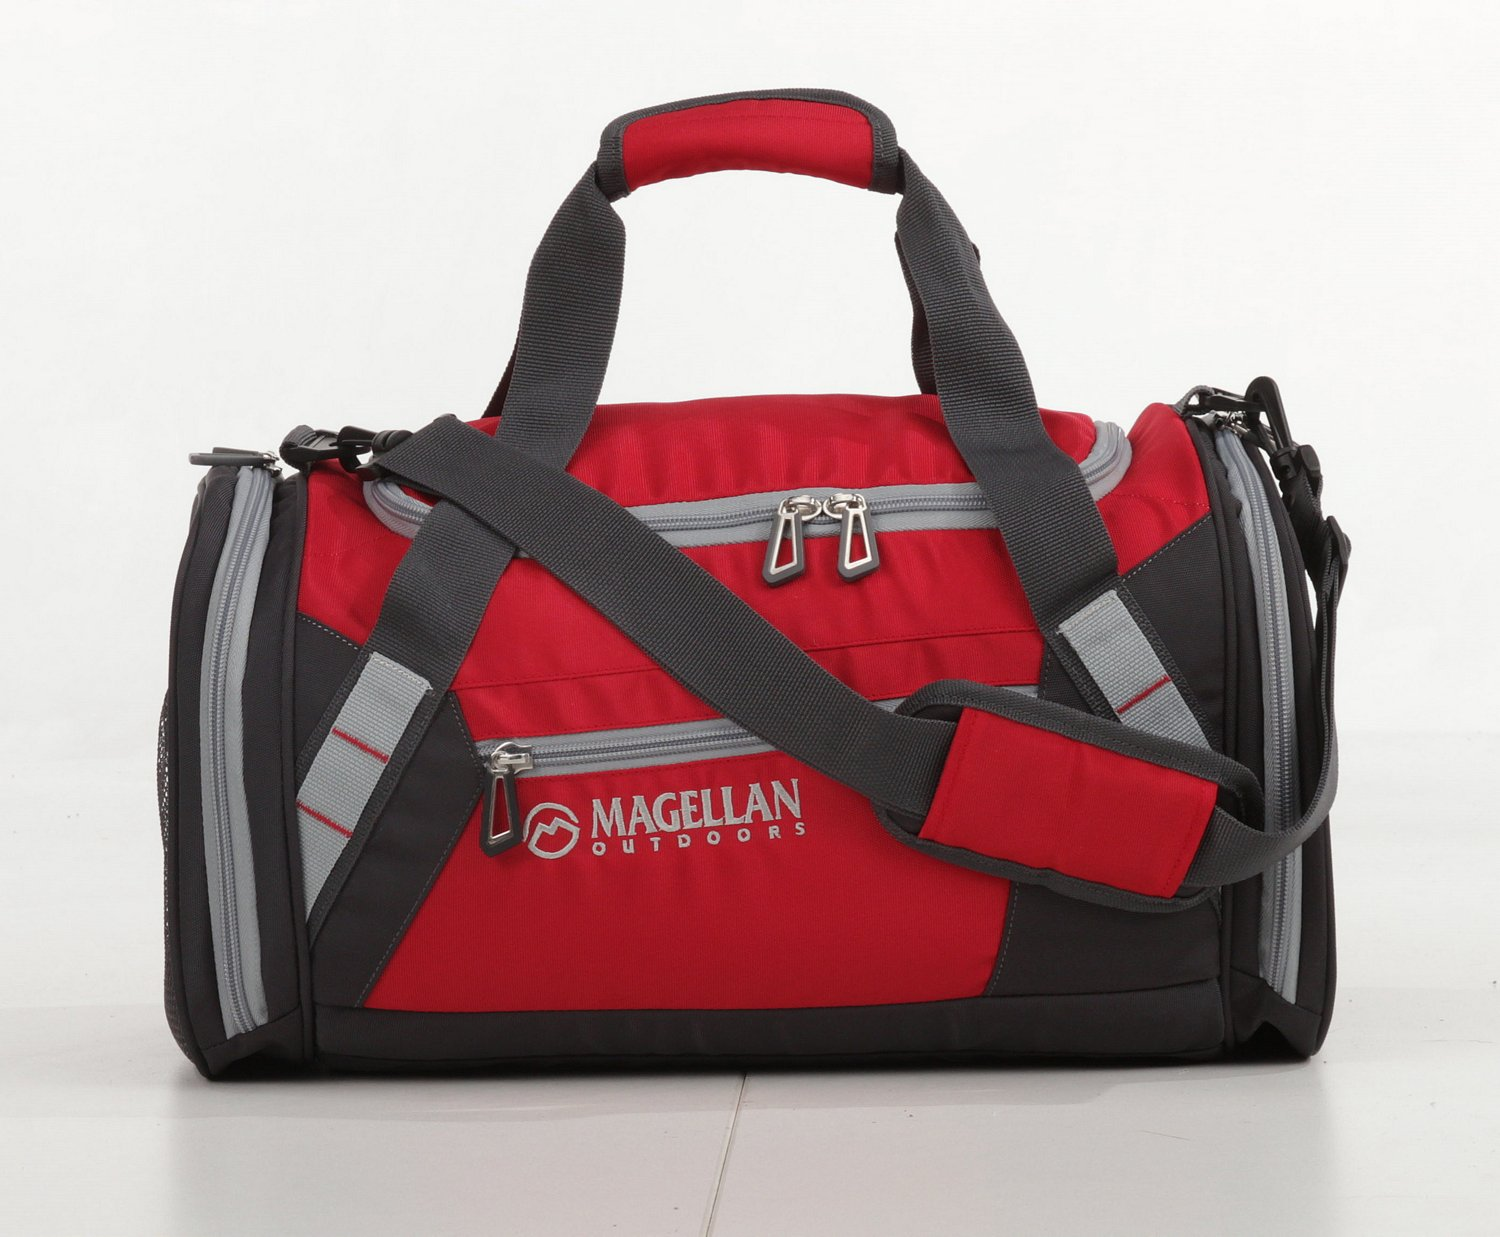 0c57d37dc8 Display product reviews for Magellan Outdoors 18 in Duffel Bag